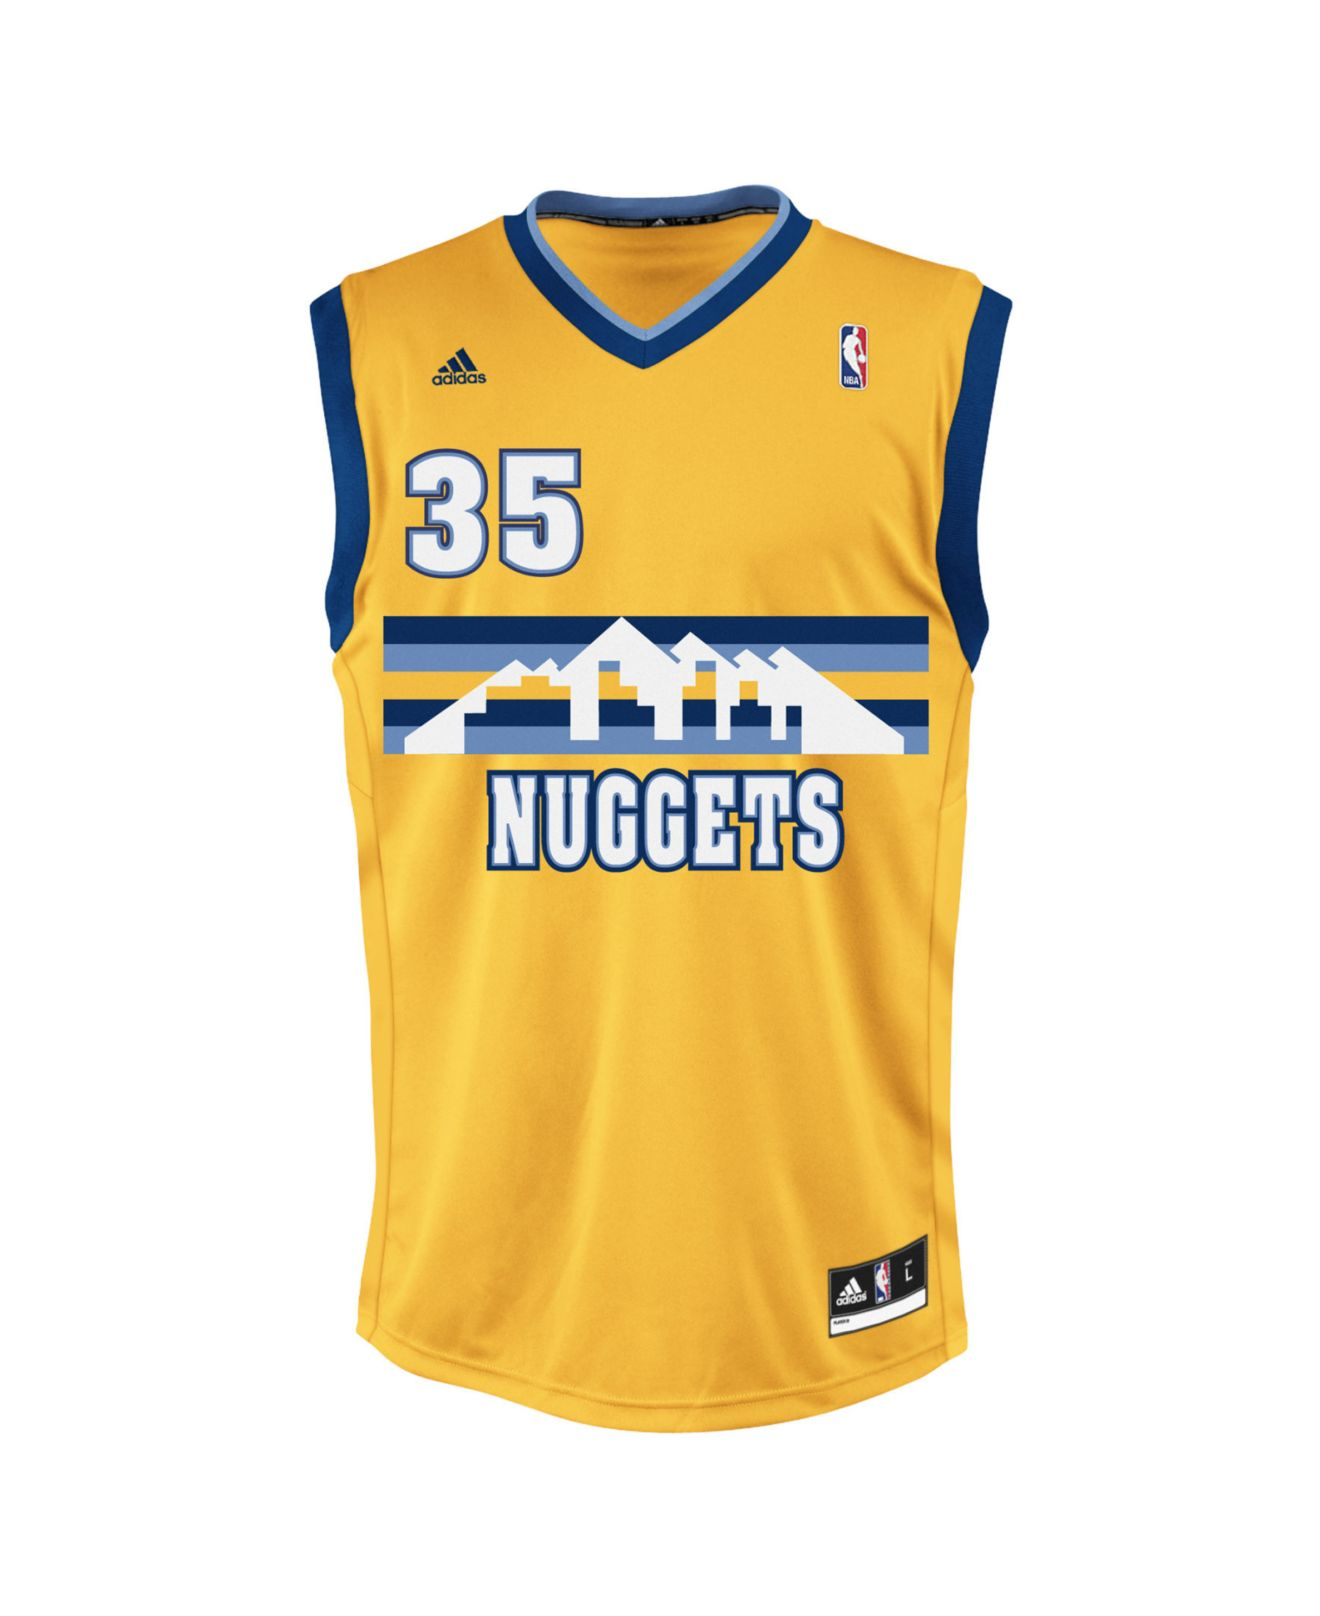 3c385a14c ... Adidas originals Mens Denver Nuggets Kenneth Faried Jersey i ...